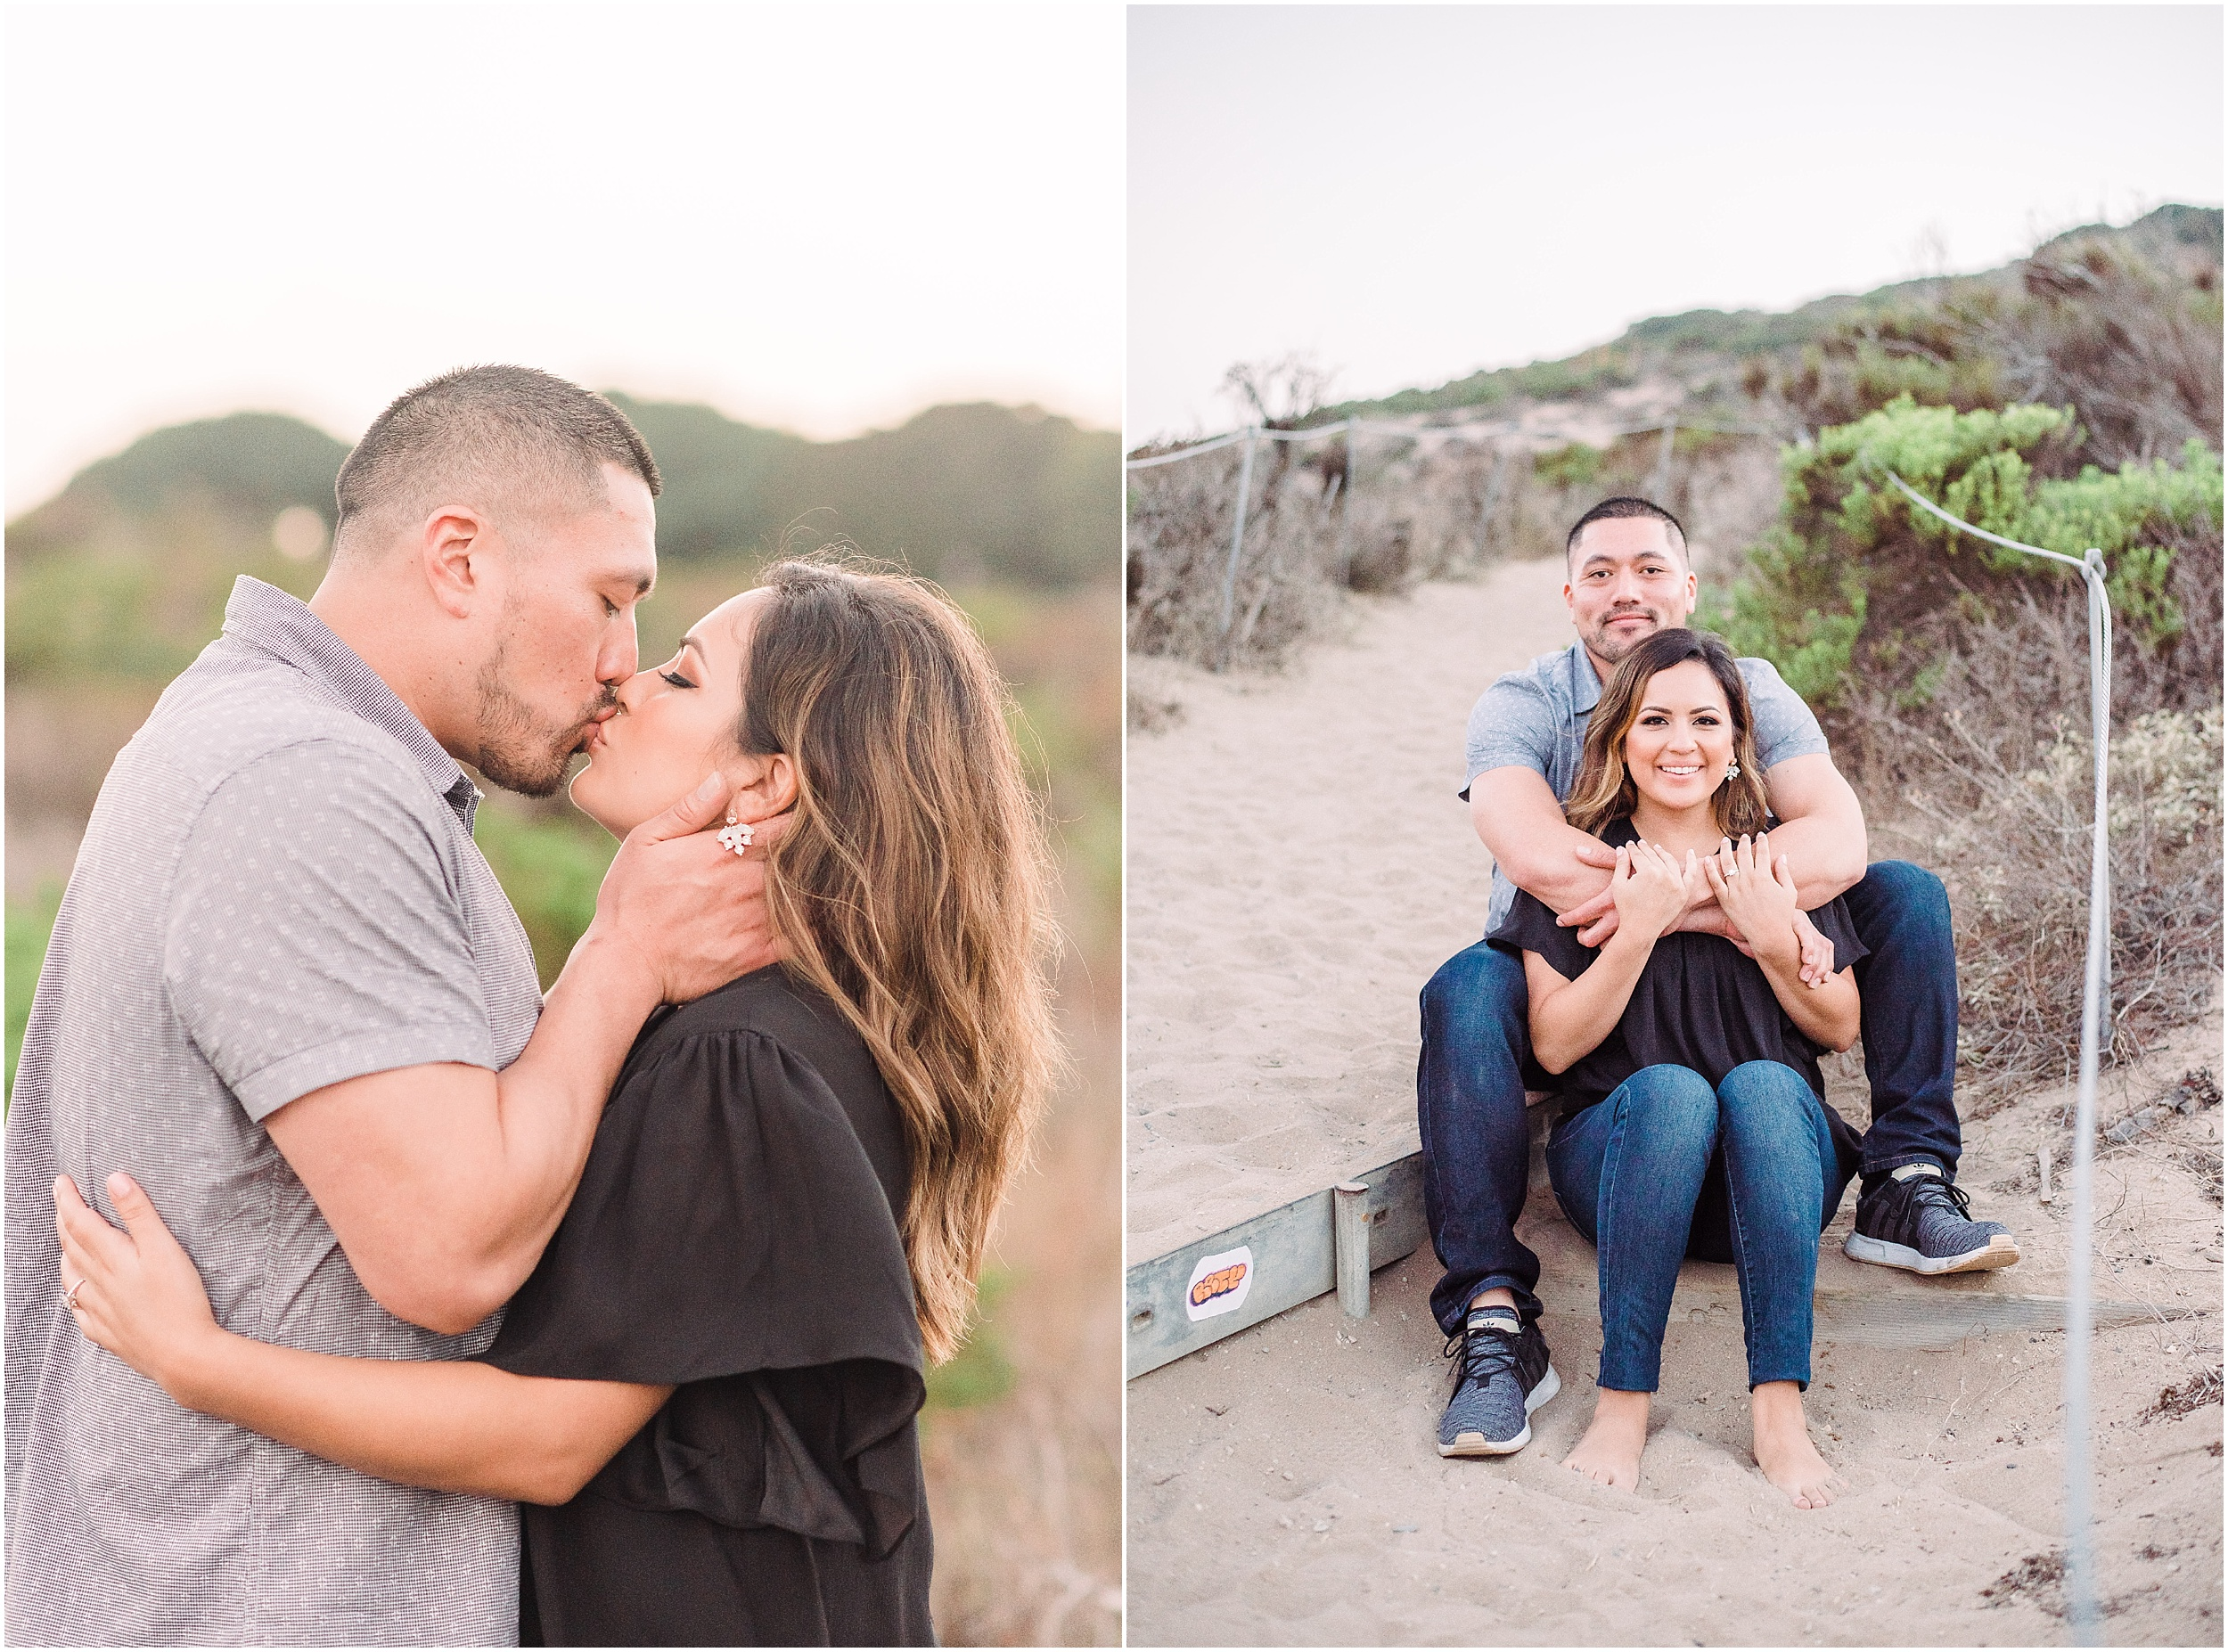 Engagement-Session-in-Malibu-California-Valeria-Gonzalez-Photography-Wedding-and-Portrait-Photographer-Richmond-Virginia-Ventura-California_0021.jpg